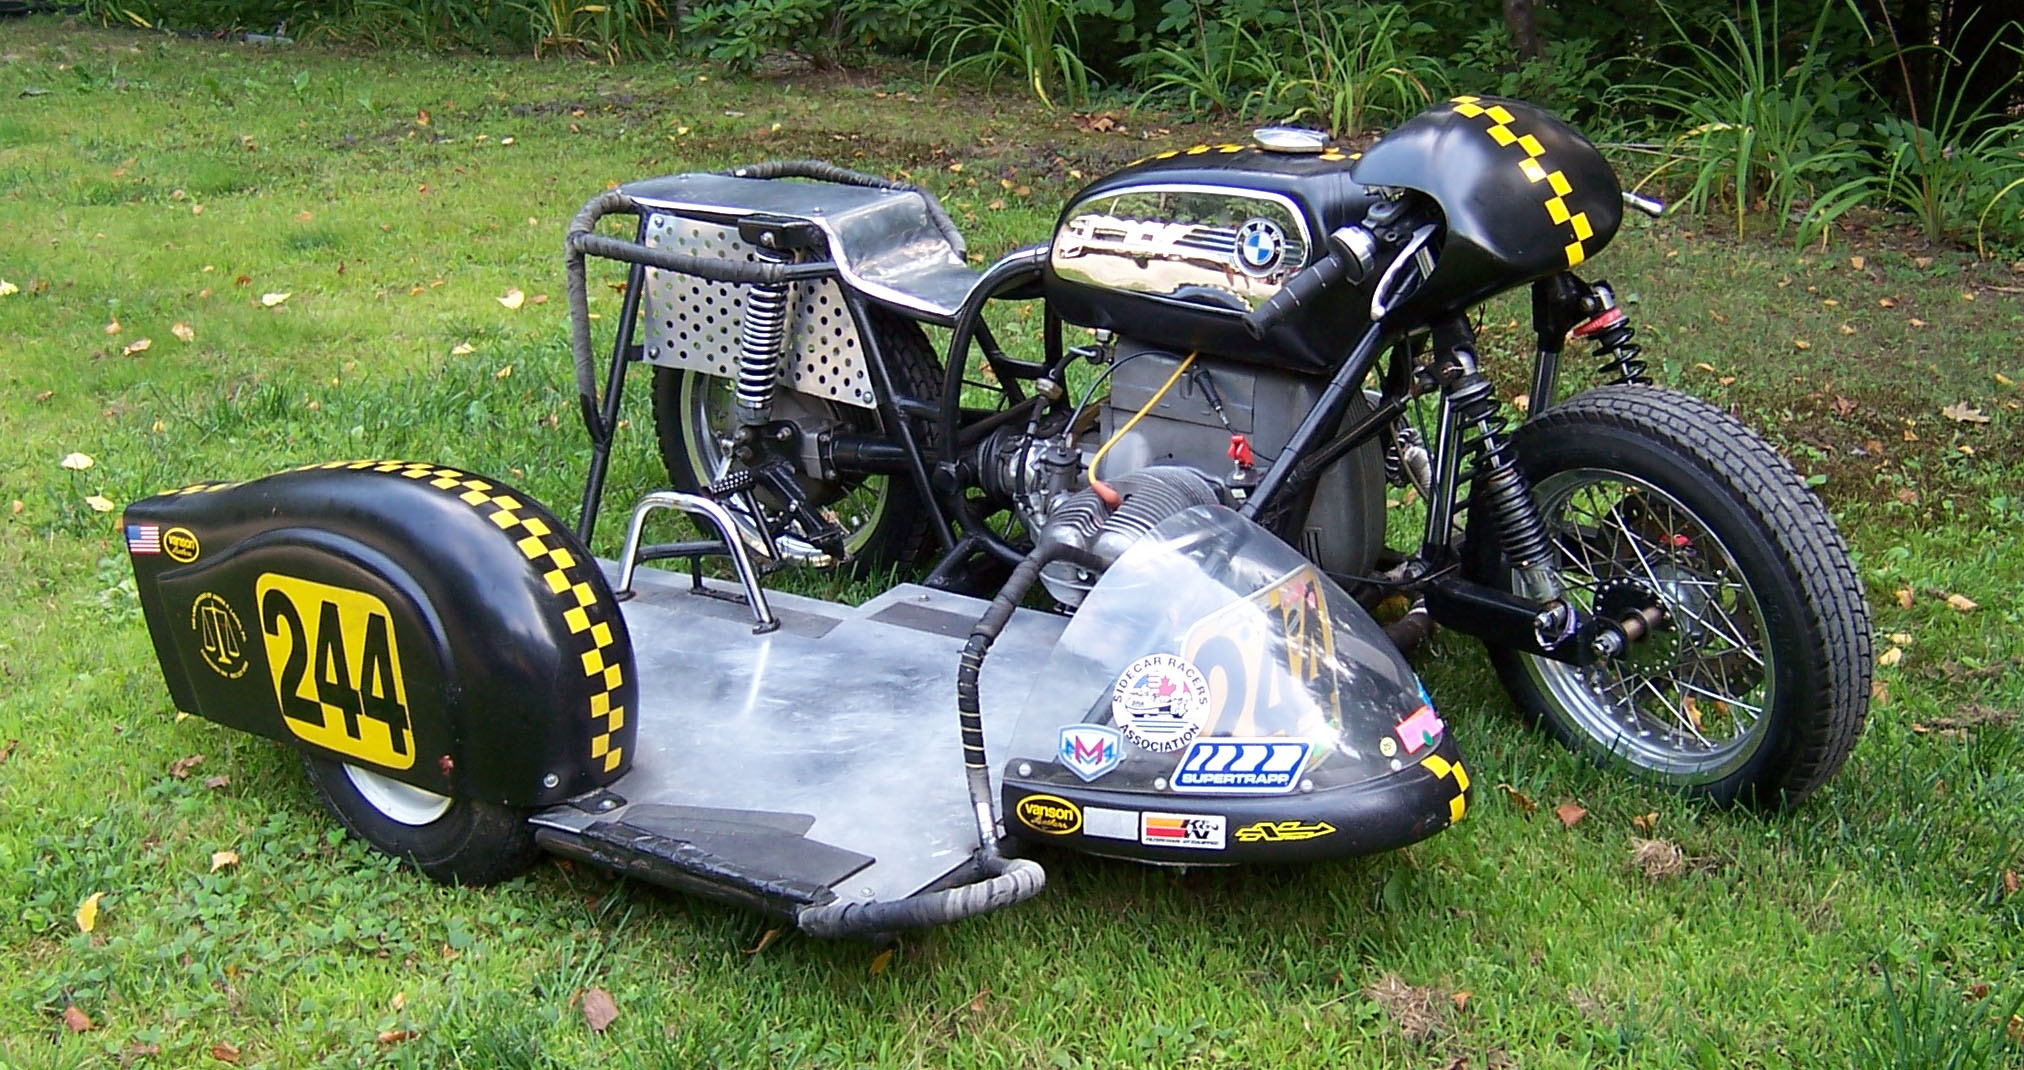 the expedition sidecar motorcycle sidecars motorcycle